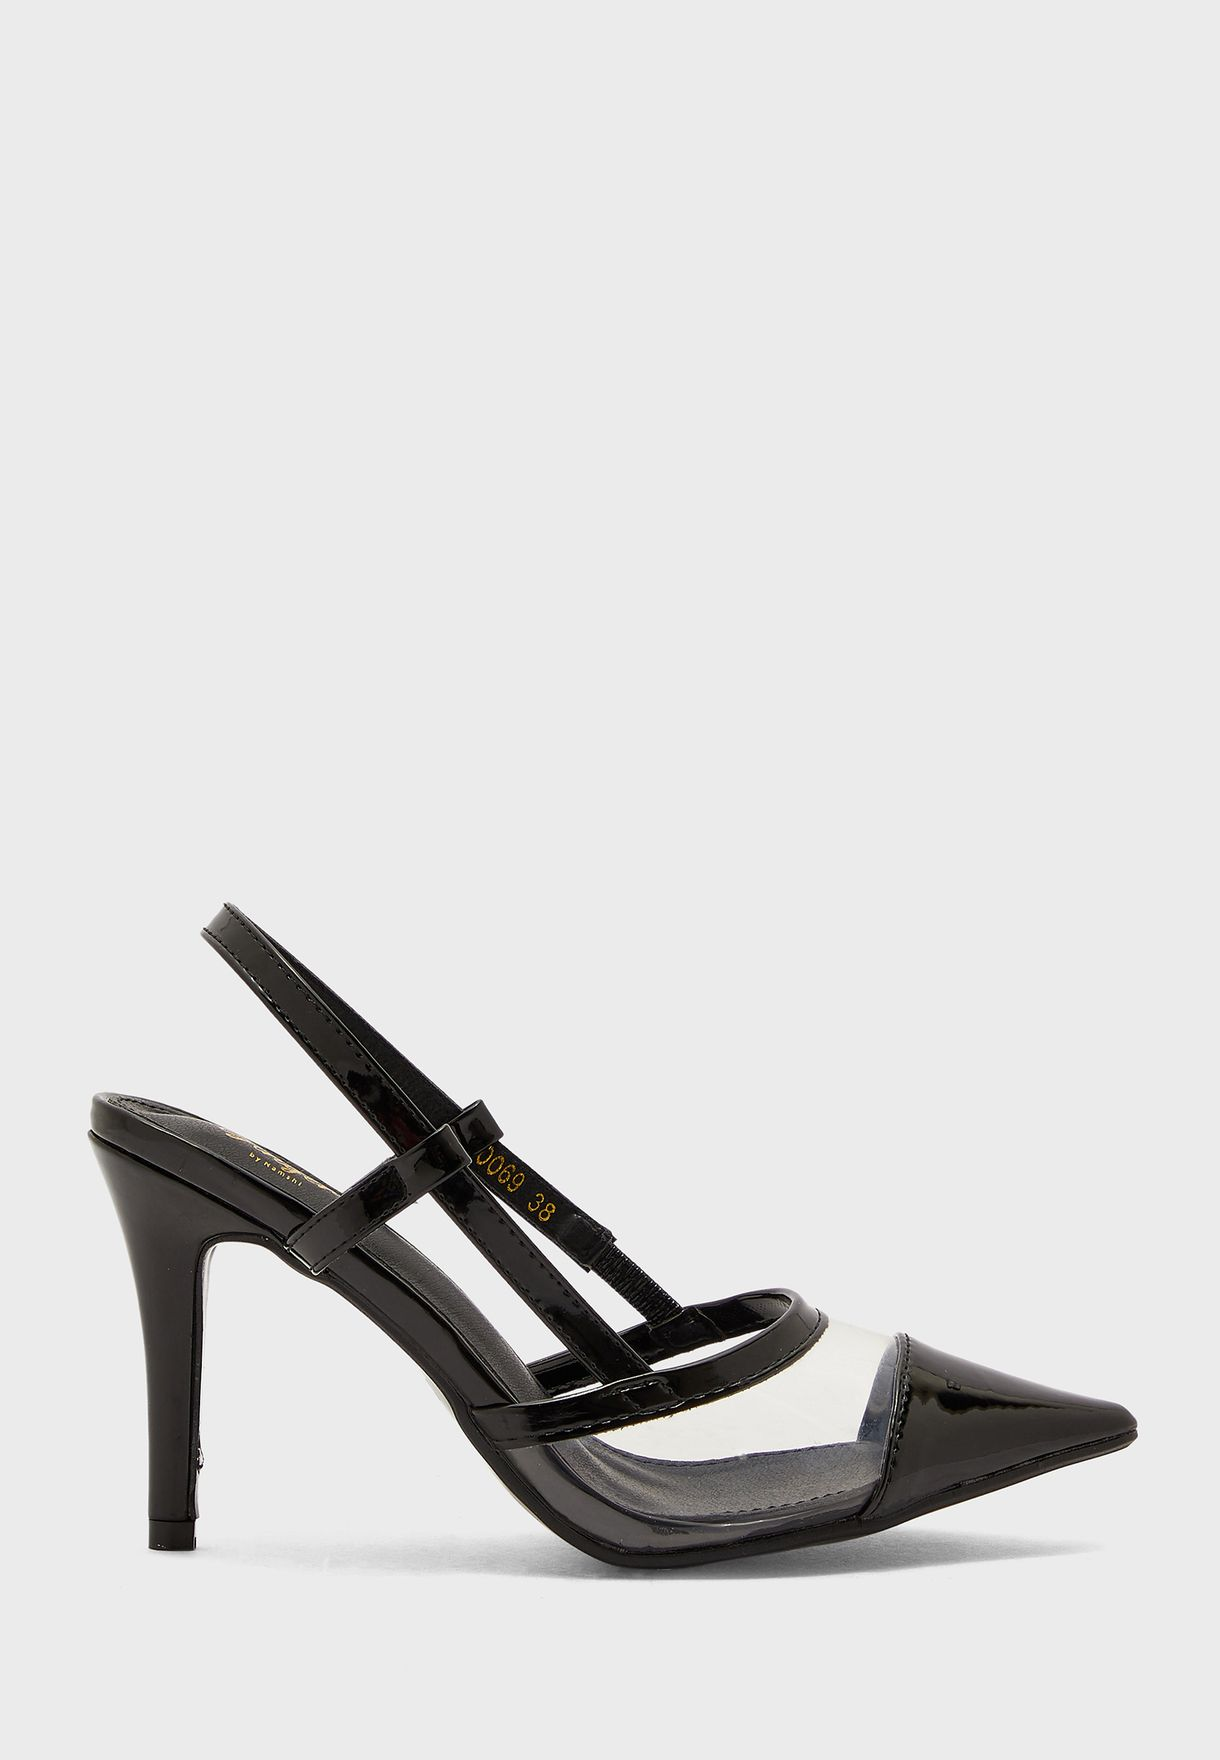 Pointed Slingback Stiletto With Perplex And Cutout Straps